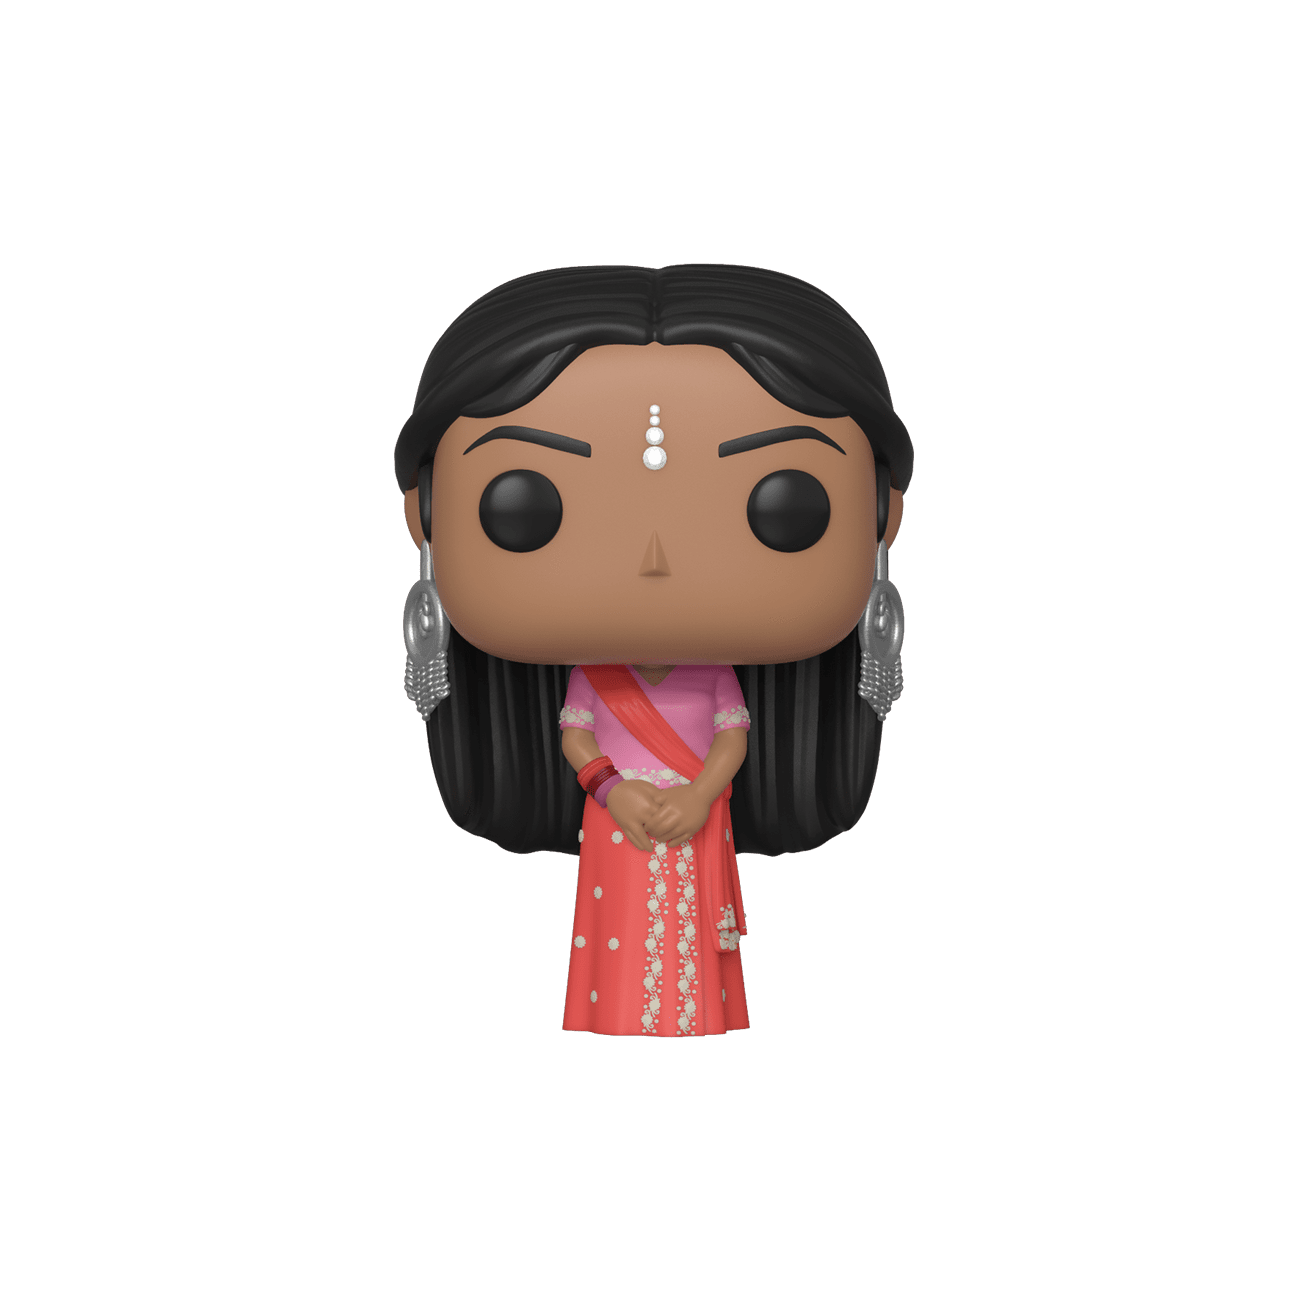 Funko Pop! Movies - Harry Potter #99 - Padma Patil - Simply Toys